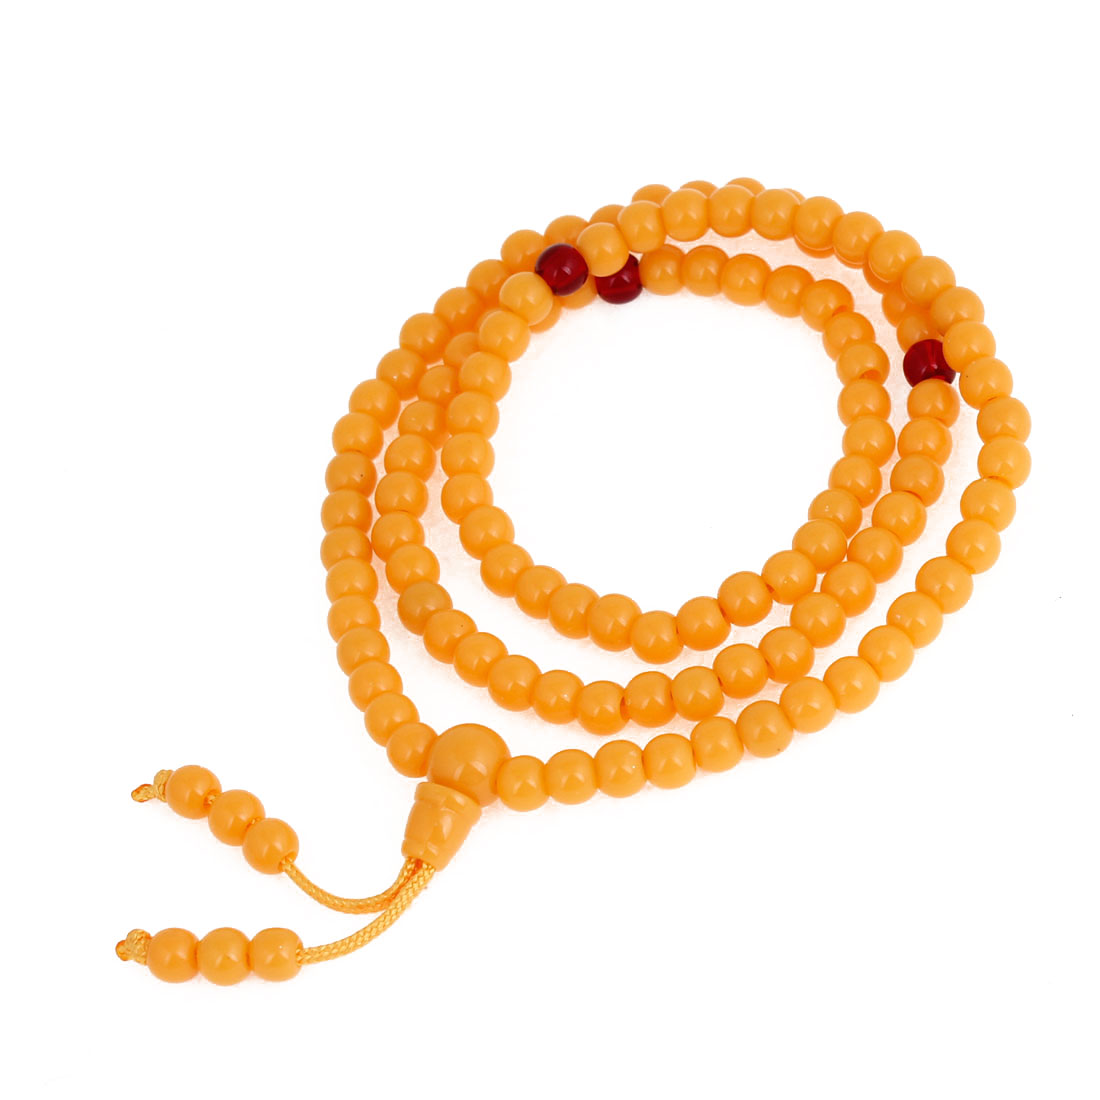 Woman Girl Orange Plastic Beads Elastic Hand Catenary Bracelet Decoration